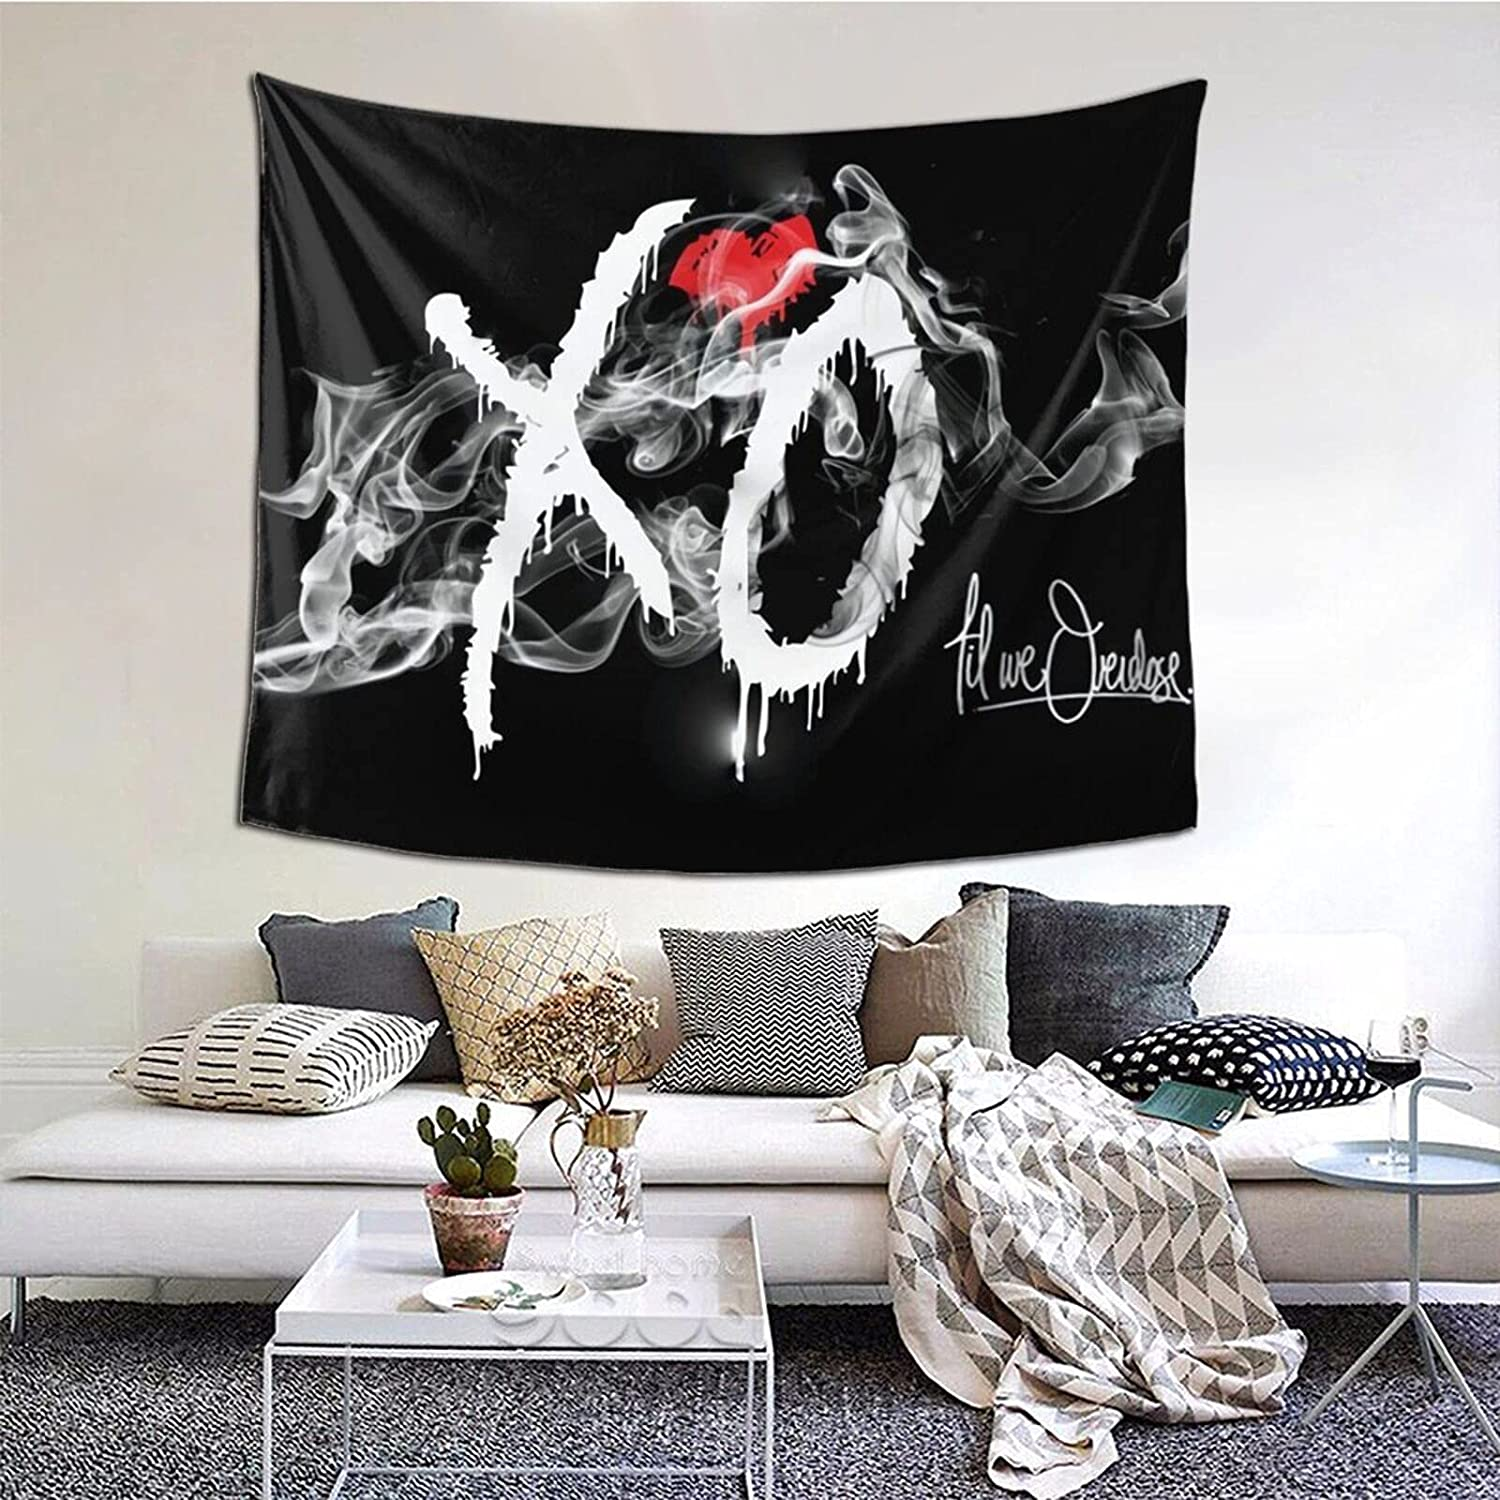 W_Eeknd X-O Tapestry Tv Series Tapestries Home Decor Wall Hanging For Bedroom Decoration Fashion Wall 60*51 Inch